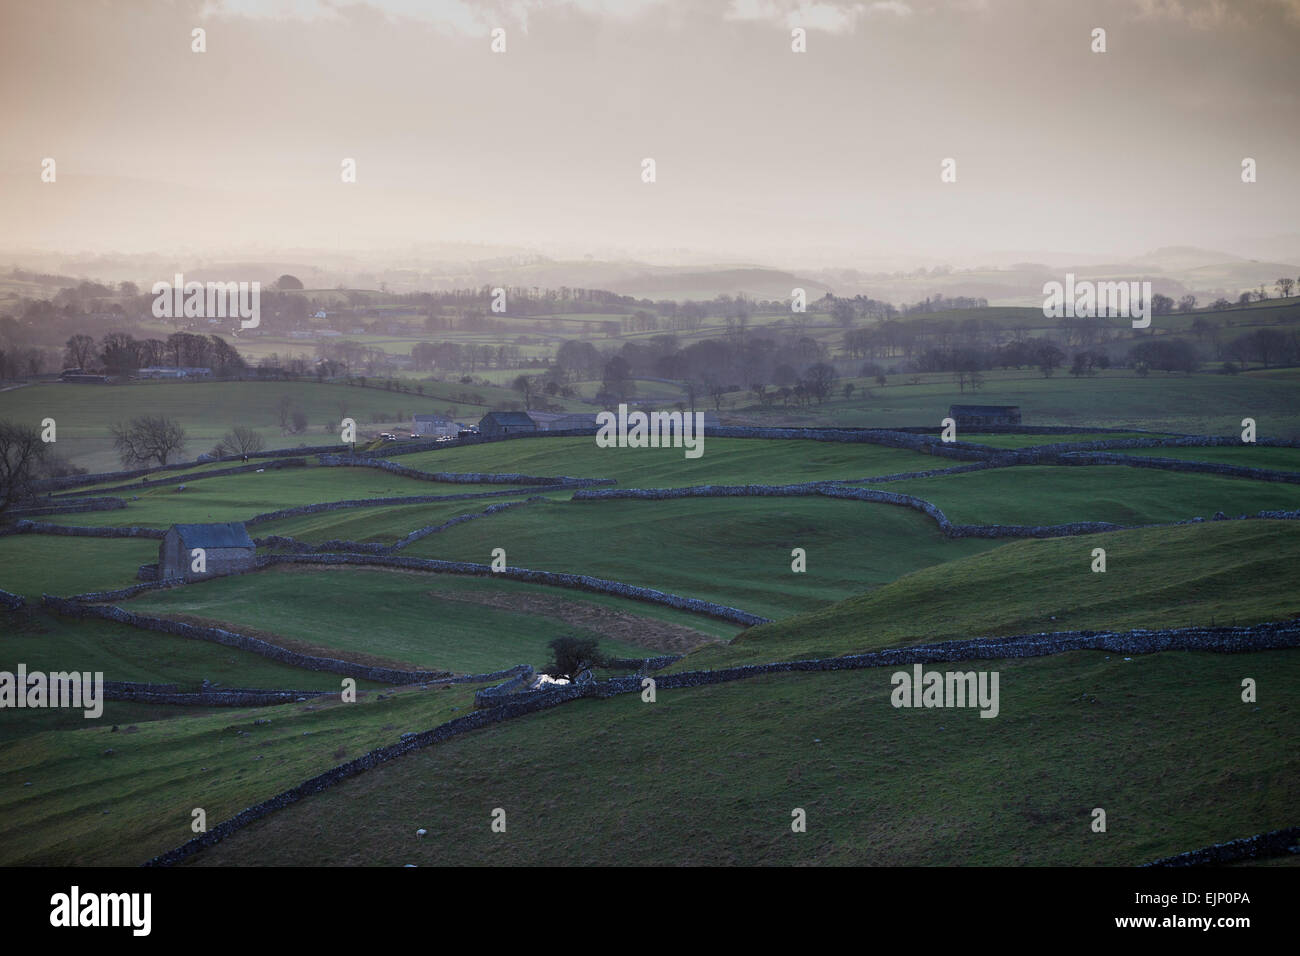 View of the Yorkshire Dales around Malham on the Pennine Way - Stock Image